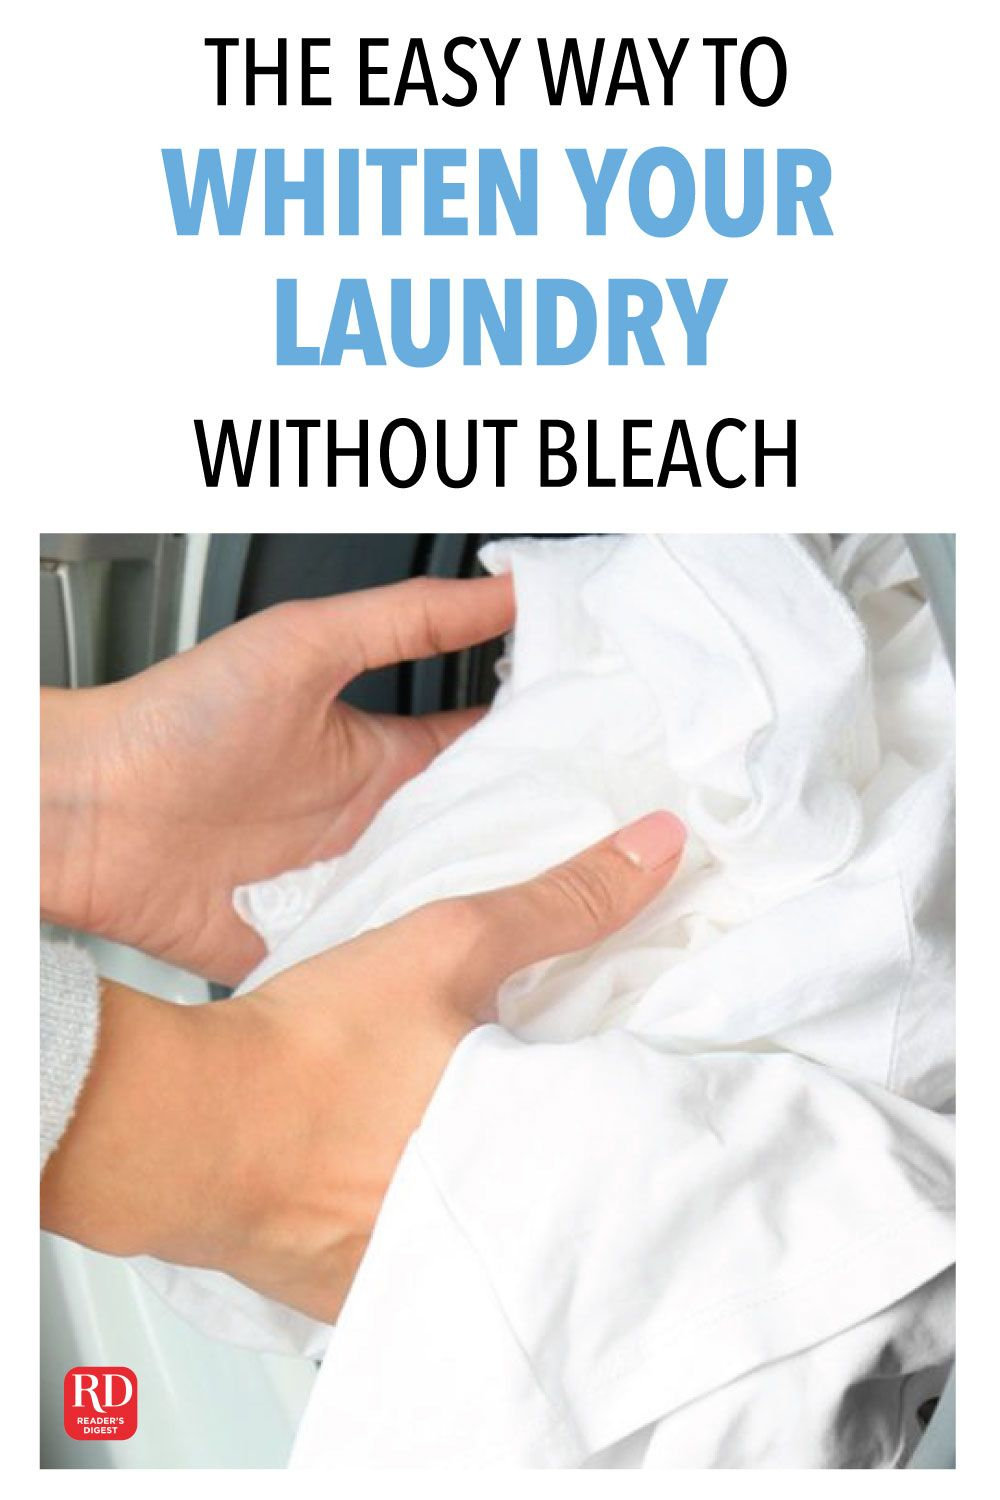 The Easy Way To Whiten Your Laundry Without Bleach Washing White